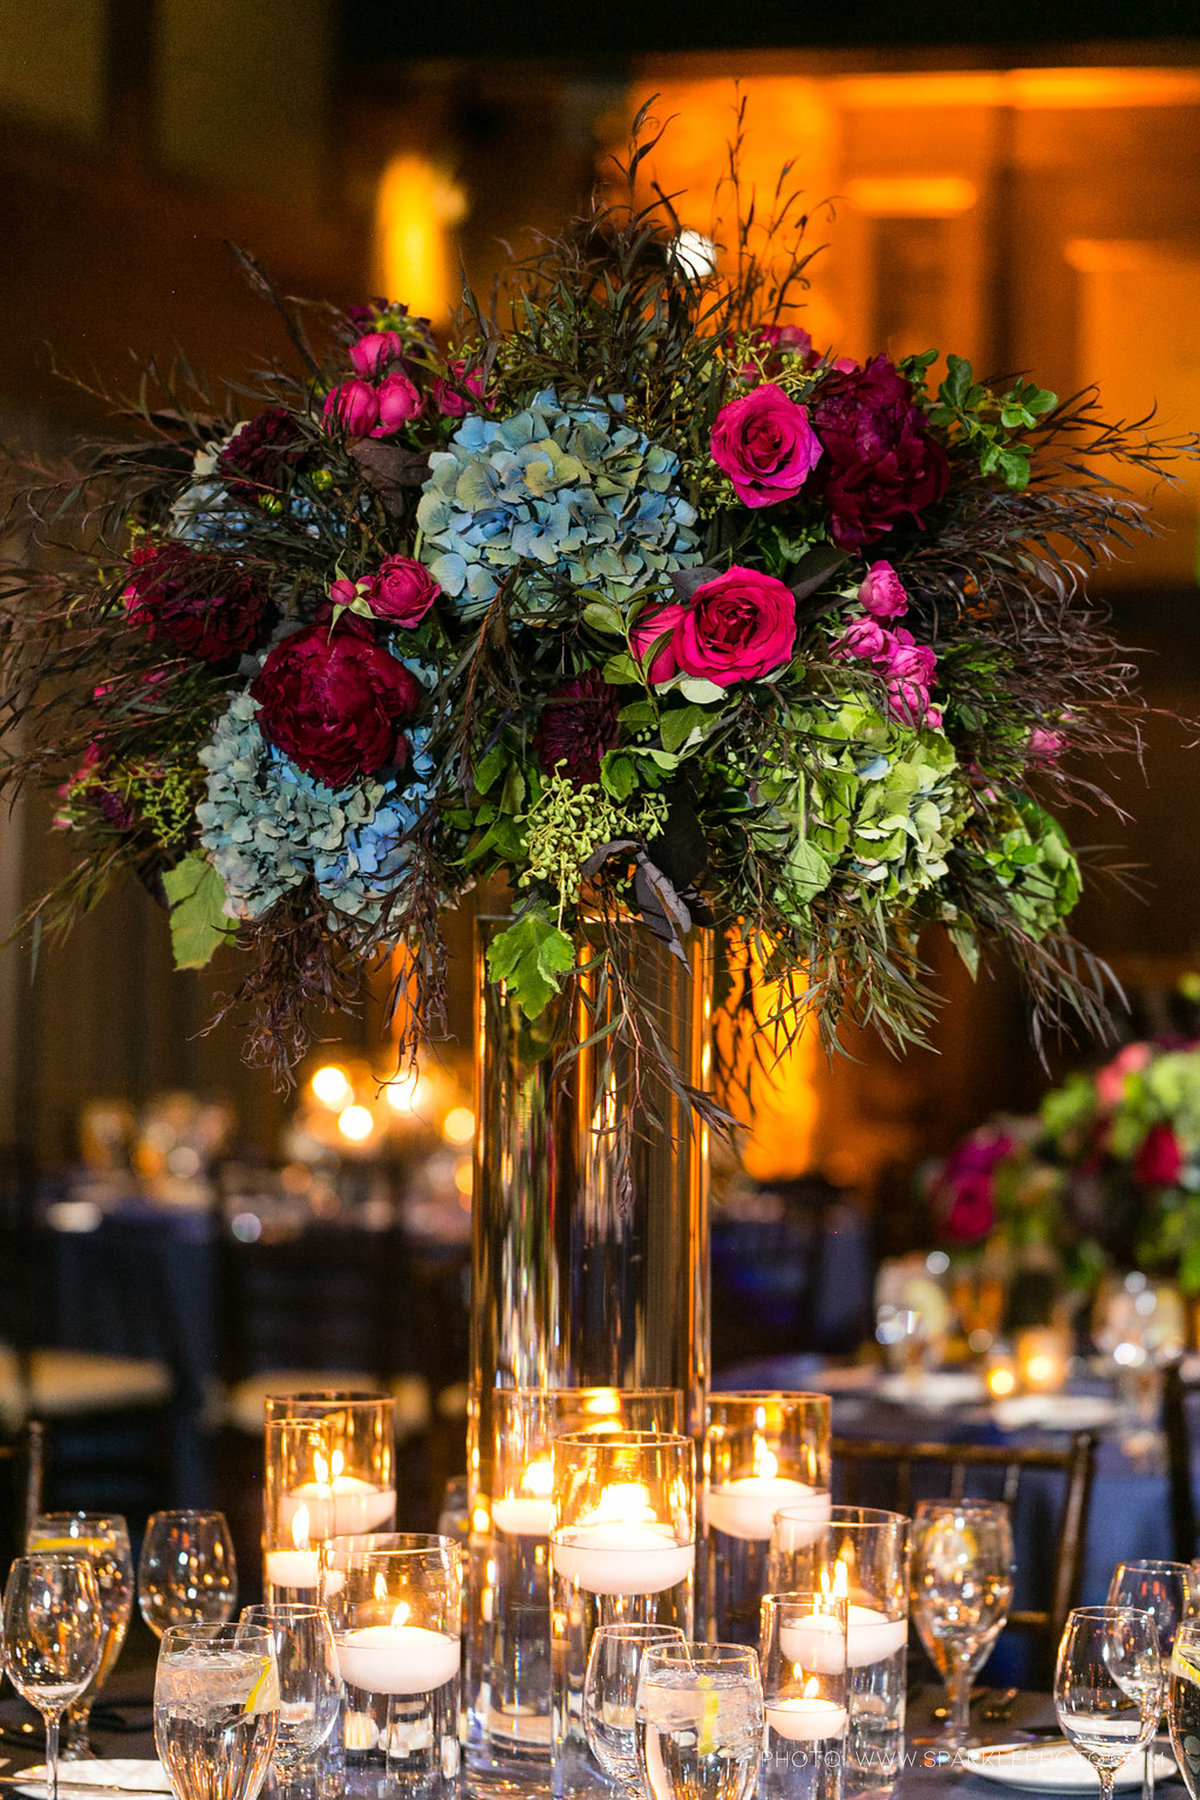 Utah Florist_Summer Weddings in Park City_Colorful Wedding_Luxe Mountain Weddings_Stein Eriksen Lodge Weddings_Artisan Bloom--122